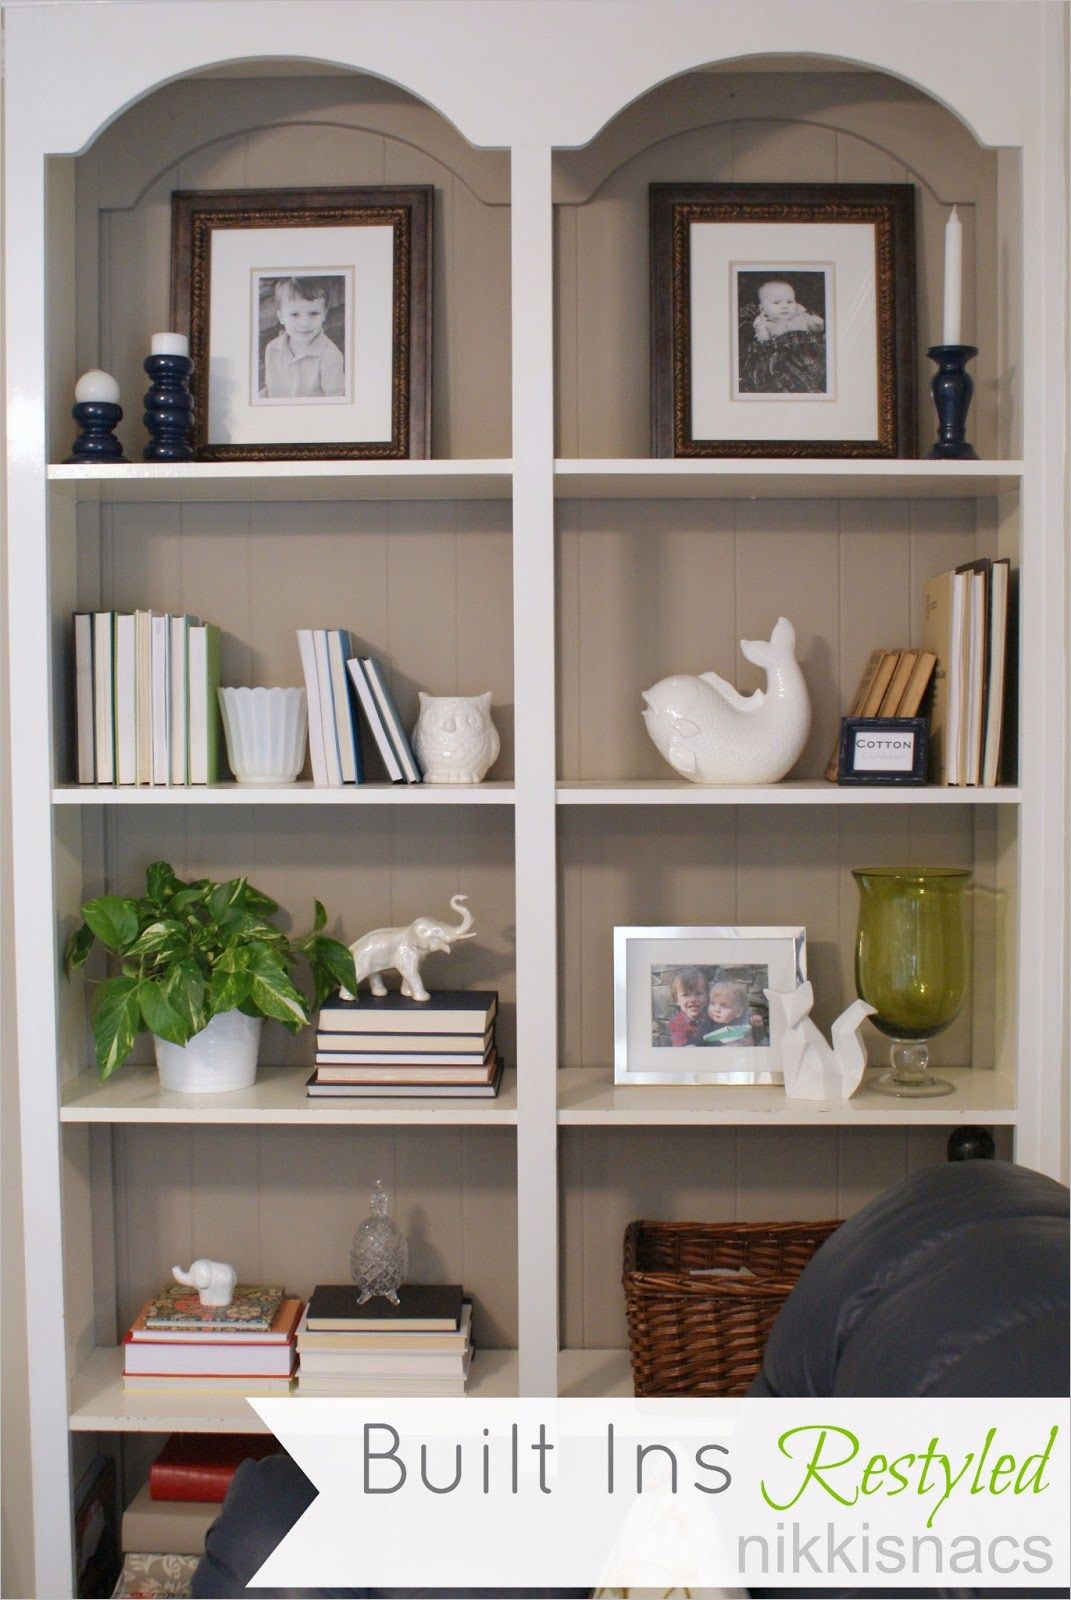 41 Creative Decorating Built In Shelves 36 Nikkis Nacs The Built